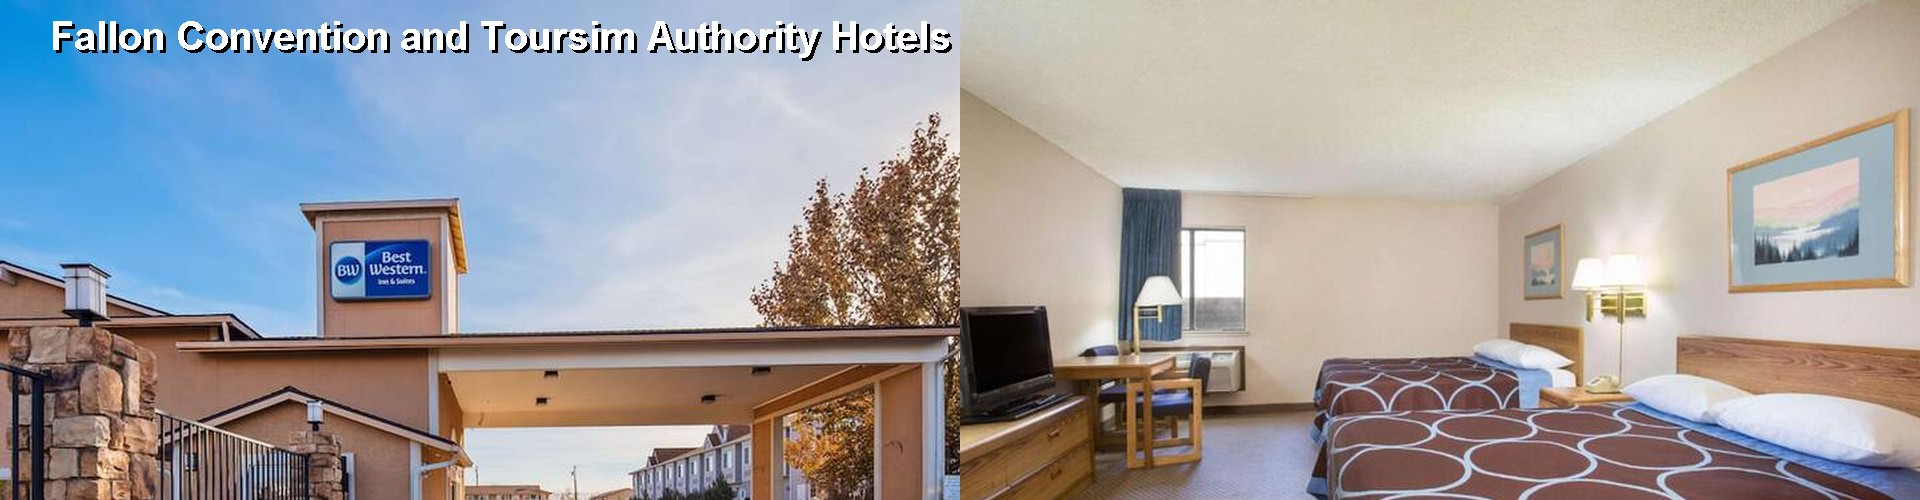 5 Best Hotels near Fallon Convention and Toursim Authority